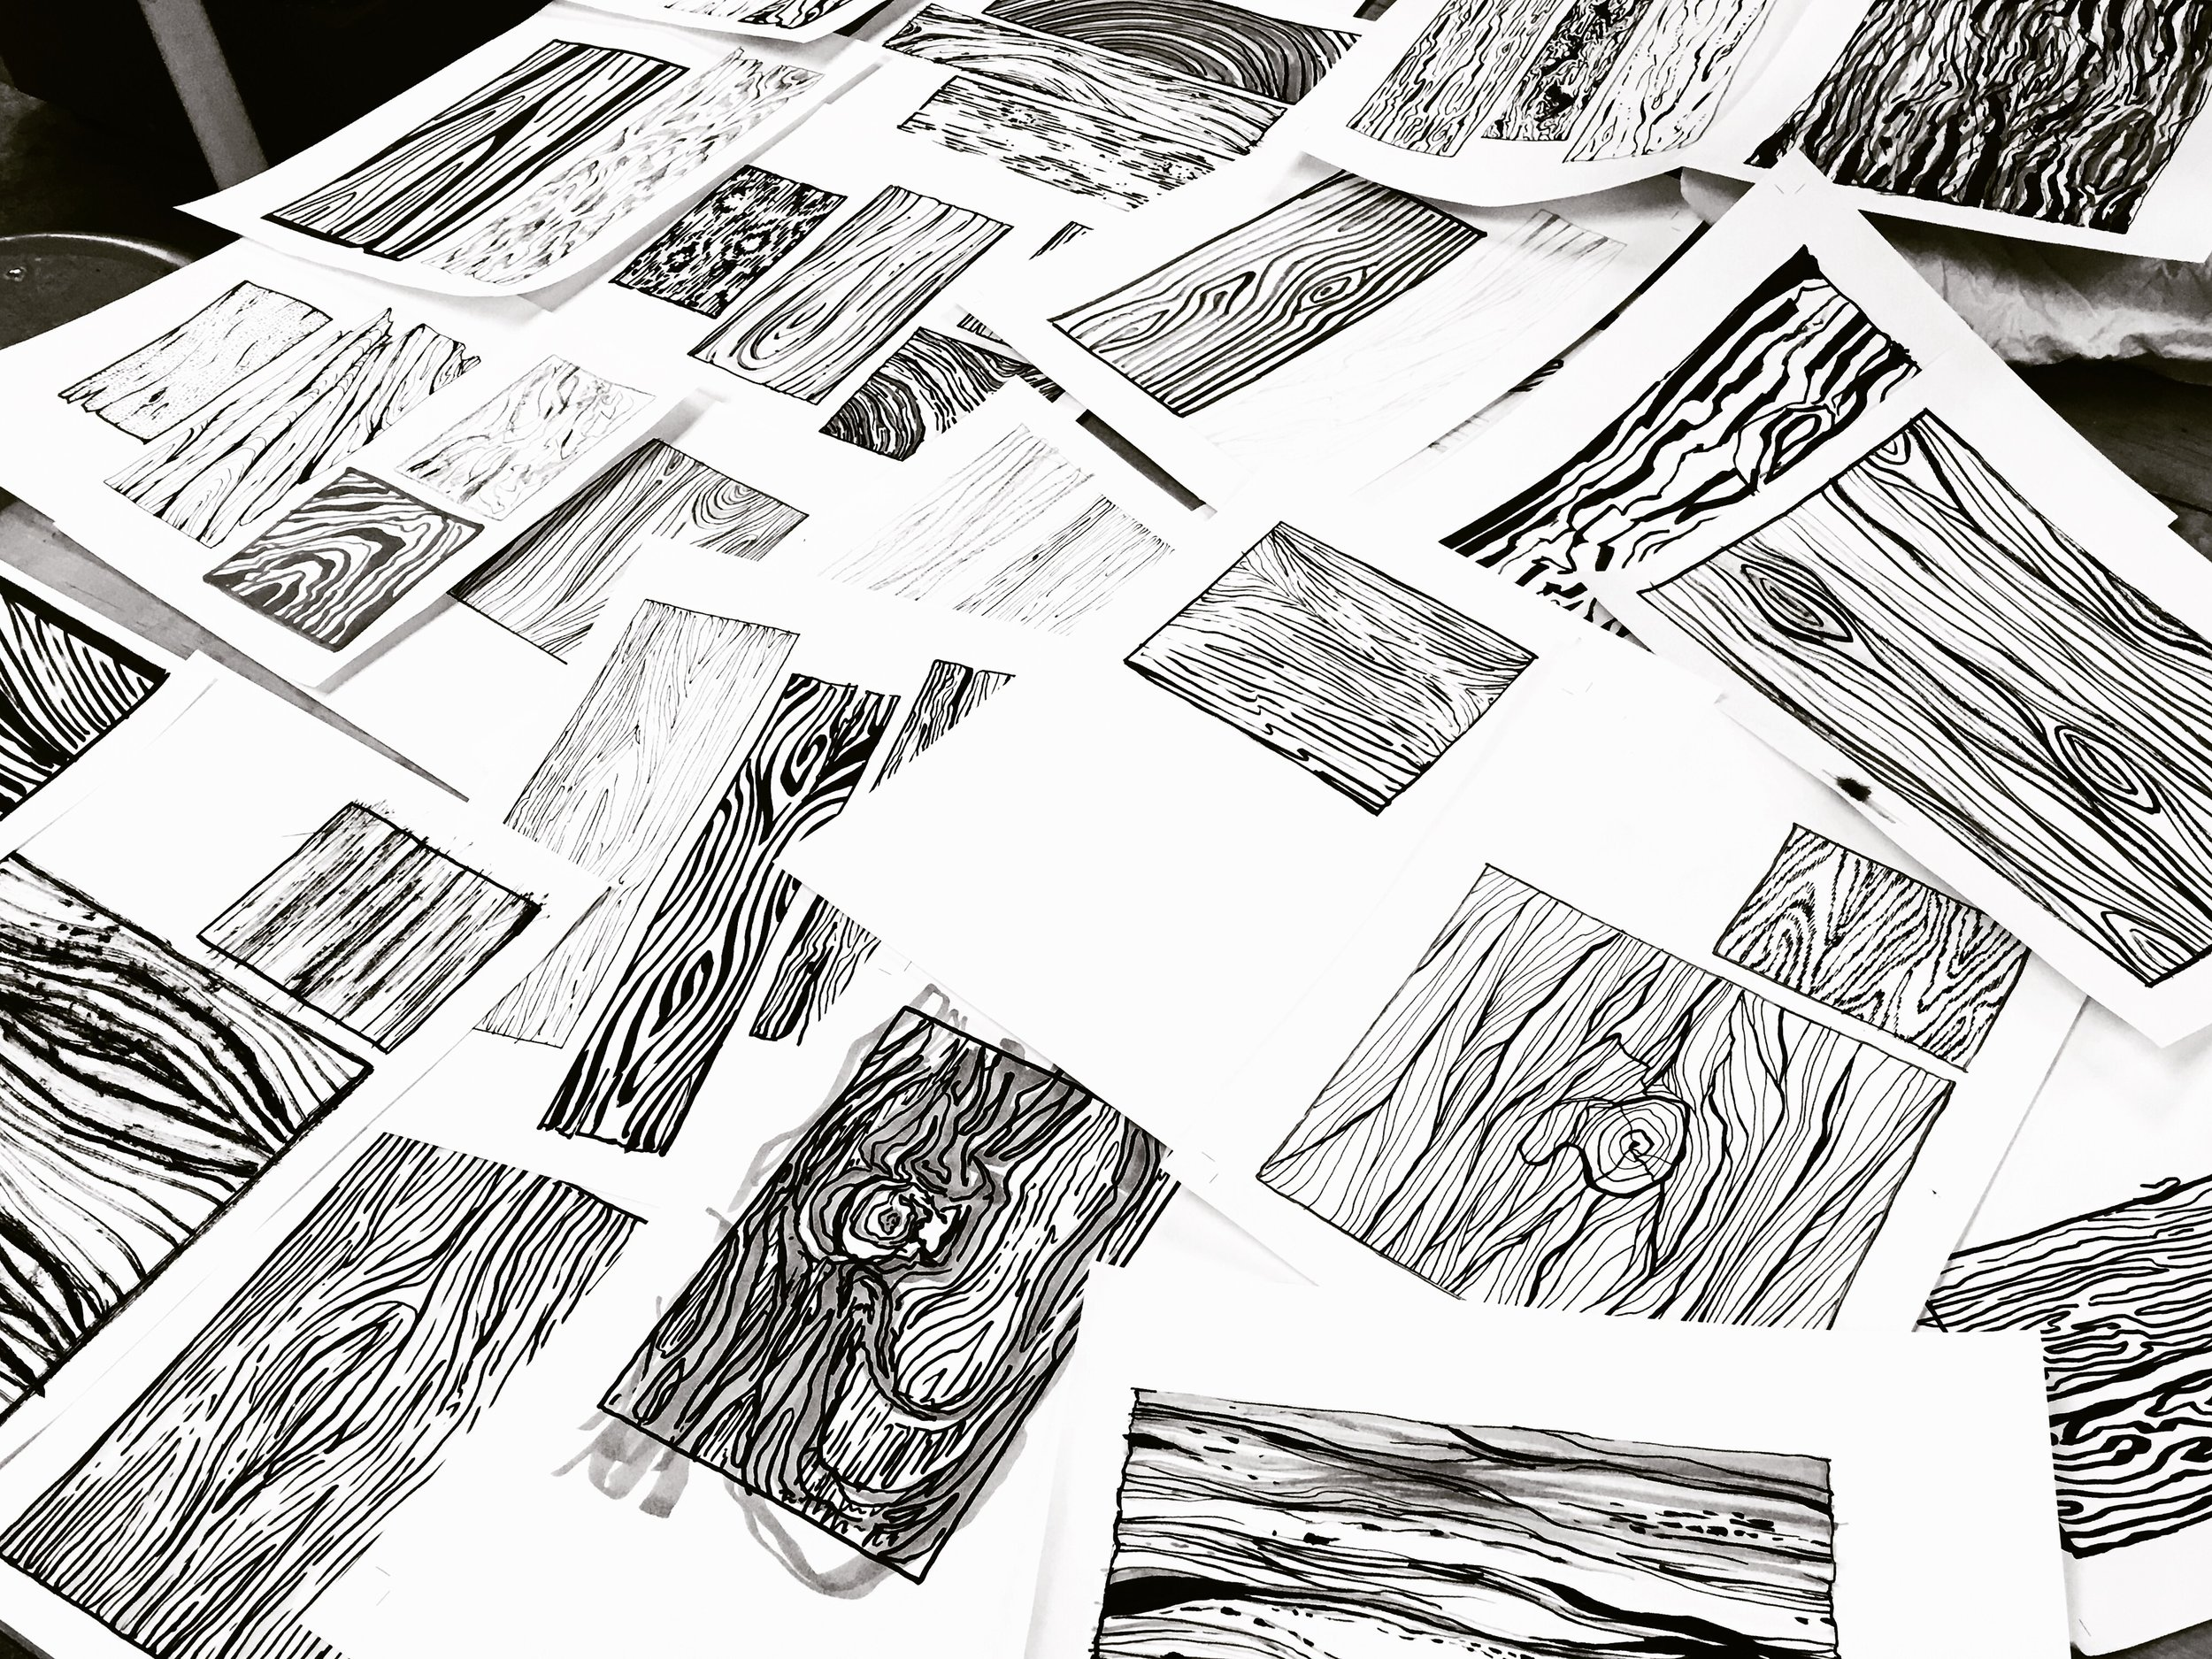 Wood grains drawn from other students